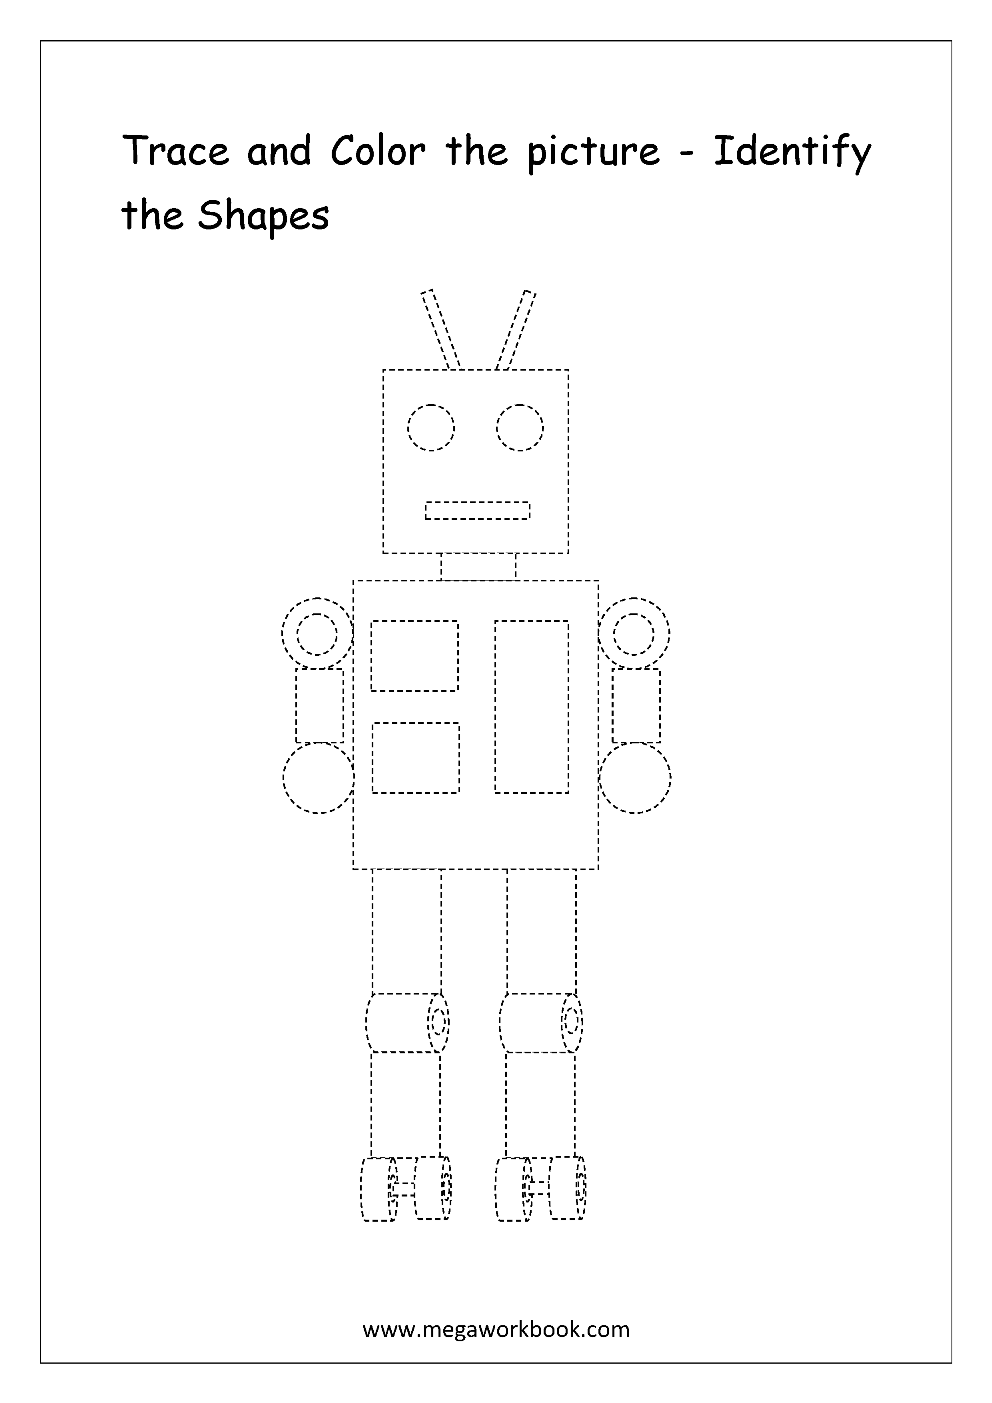 Sheep Craft X also Identify The Shapes Robot furthermore Pre Writing Zig Zag Worksheets moreover Number Coloring Page For Preschool likewise Guitar Craft Photo. on shapes coloring pages for preschoolers